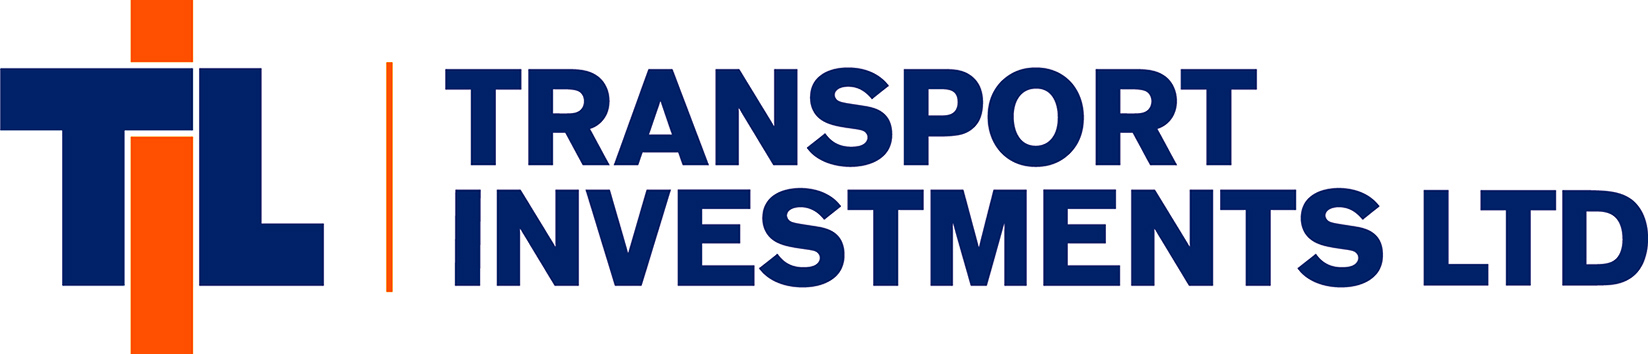 TRANSPORT INVESTMENTS LTD